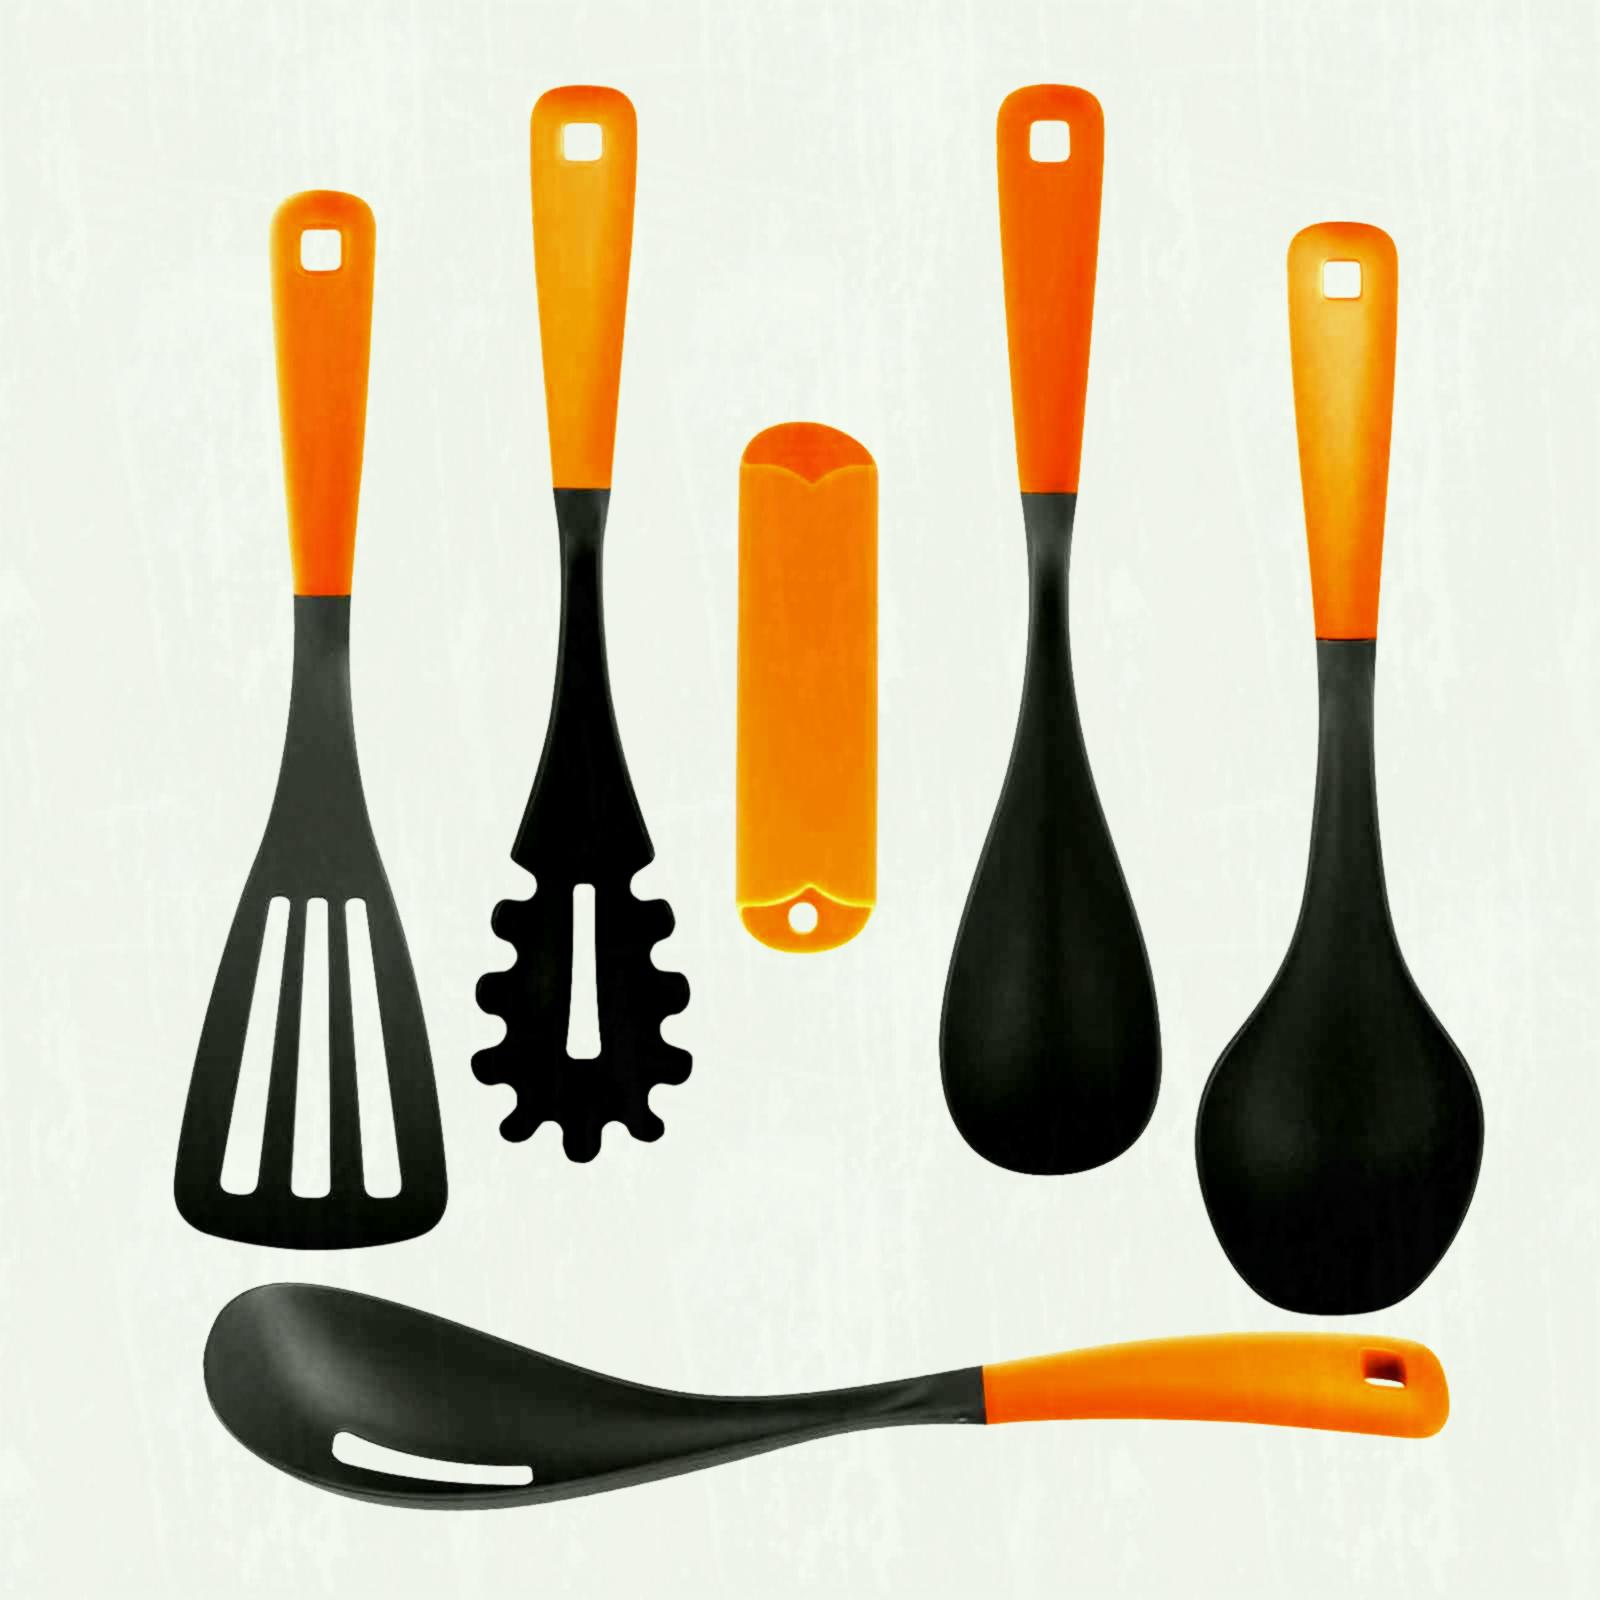 1600x1600 Cooking Clipart Black And White Panda Free Images Cvoae Clip Art